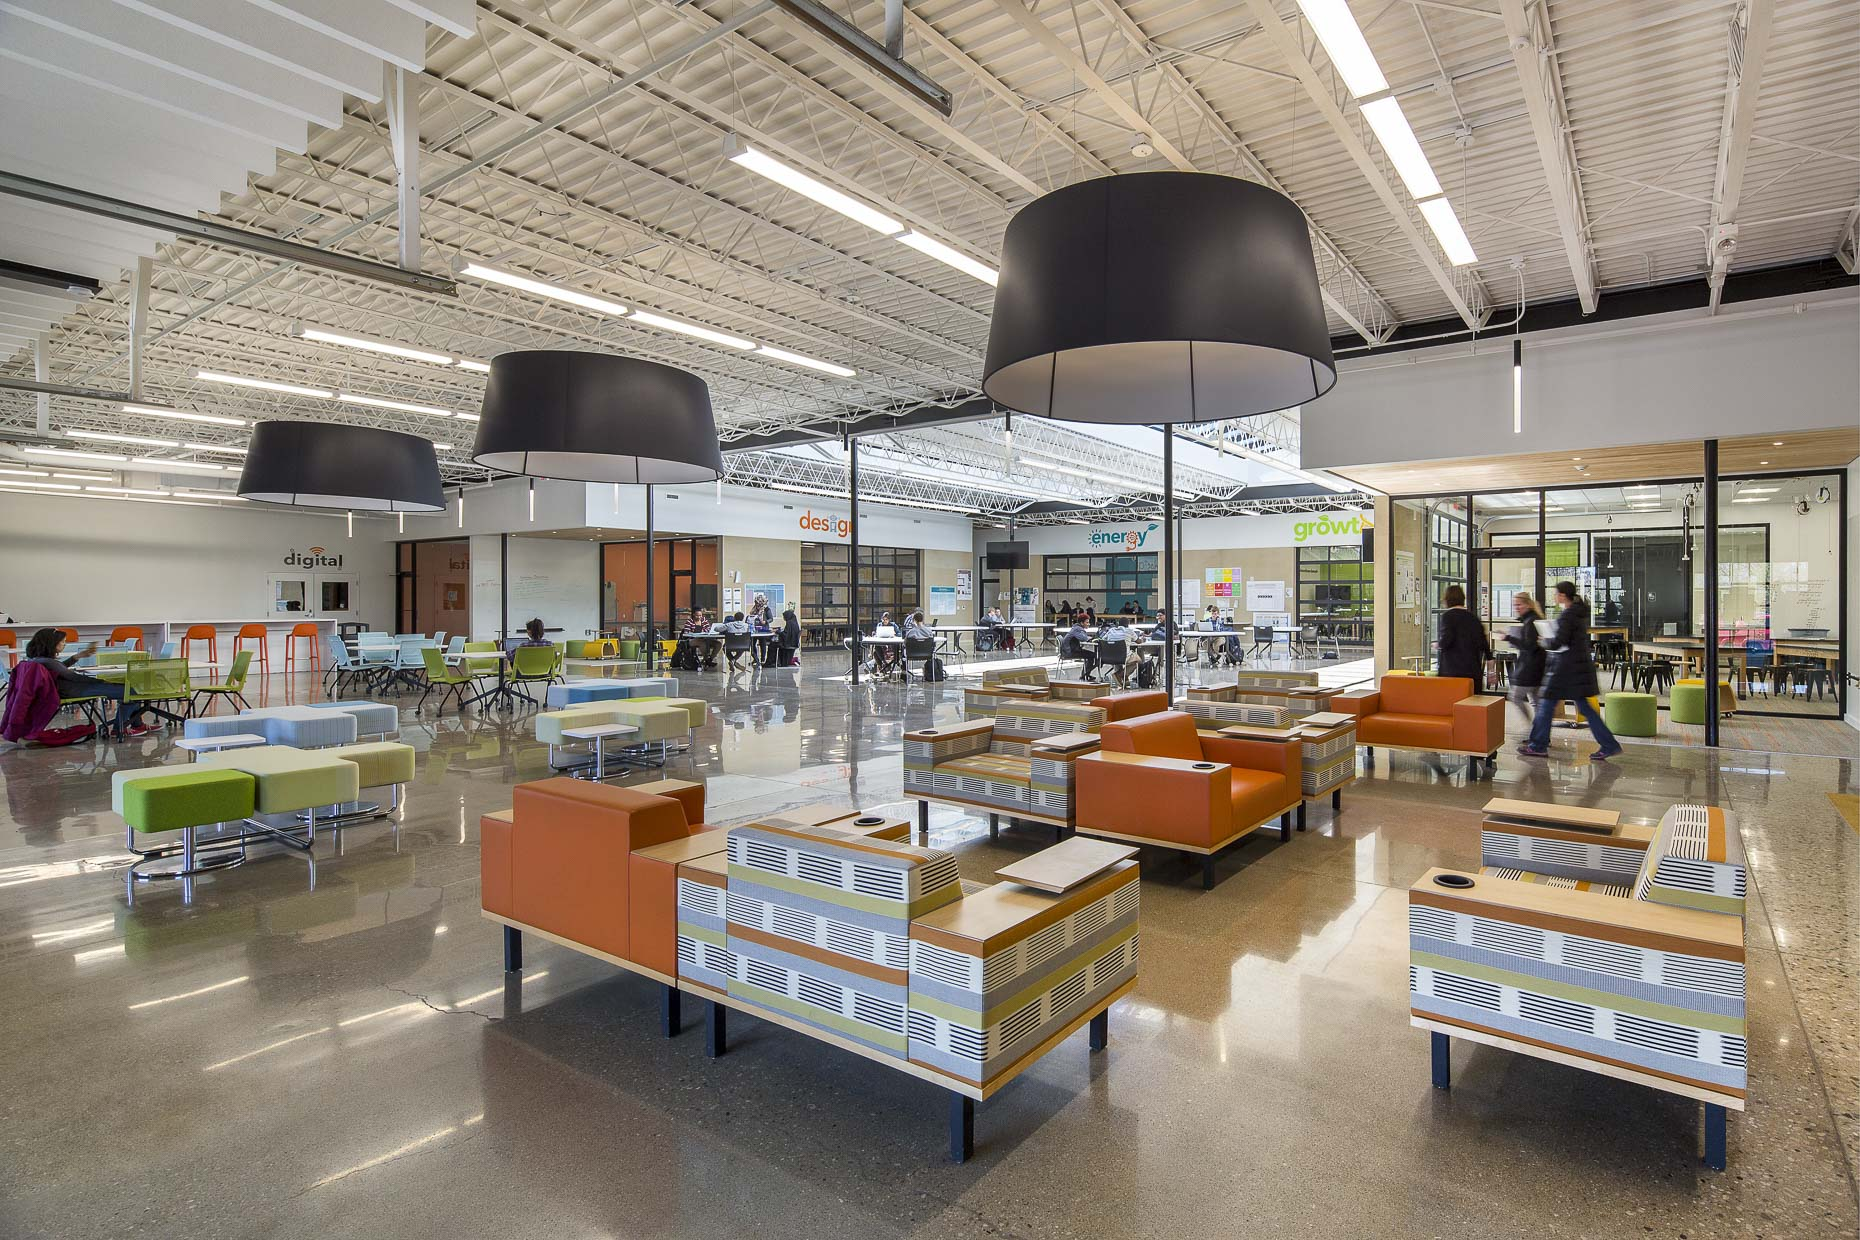 Past Innovation Lab by WSA Studio photographed by BRad Feinknopf based in Columbus, Ohio